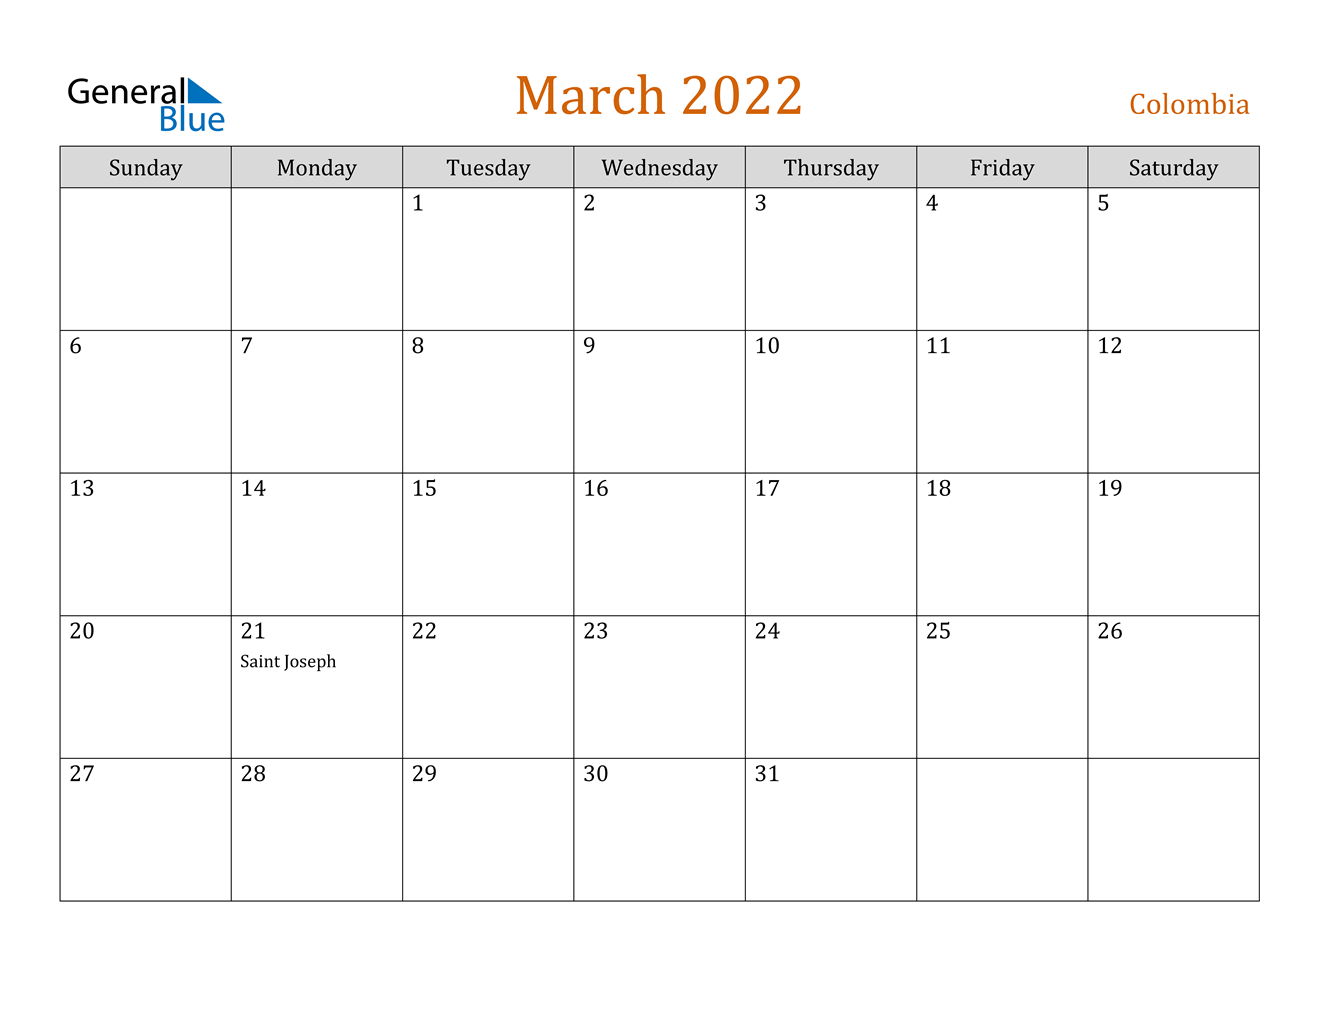 March 2022 Calendar - Colombia with regard to February March Calendar 2022